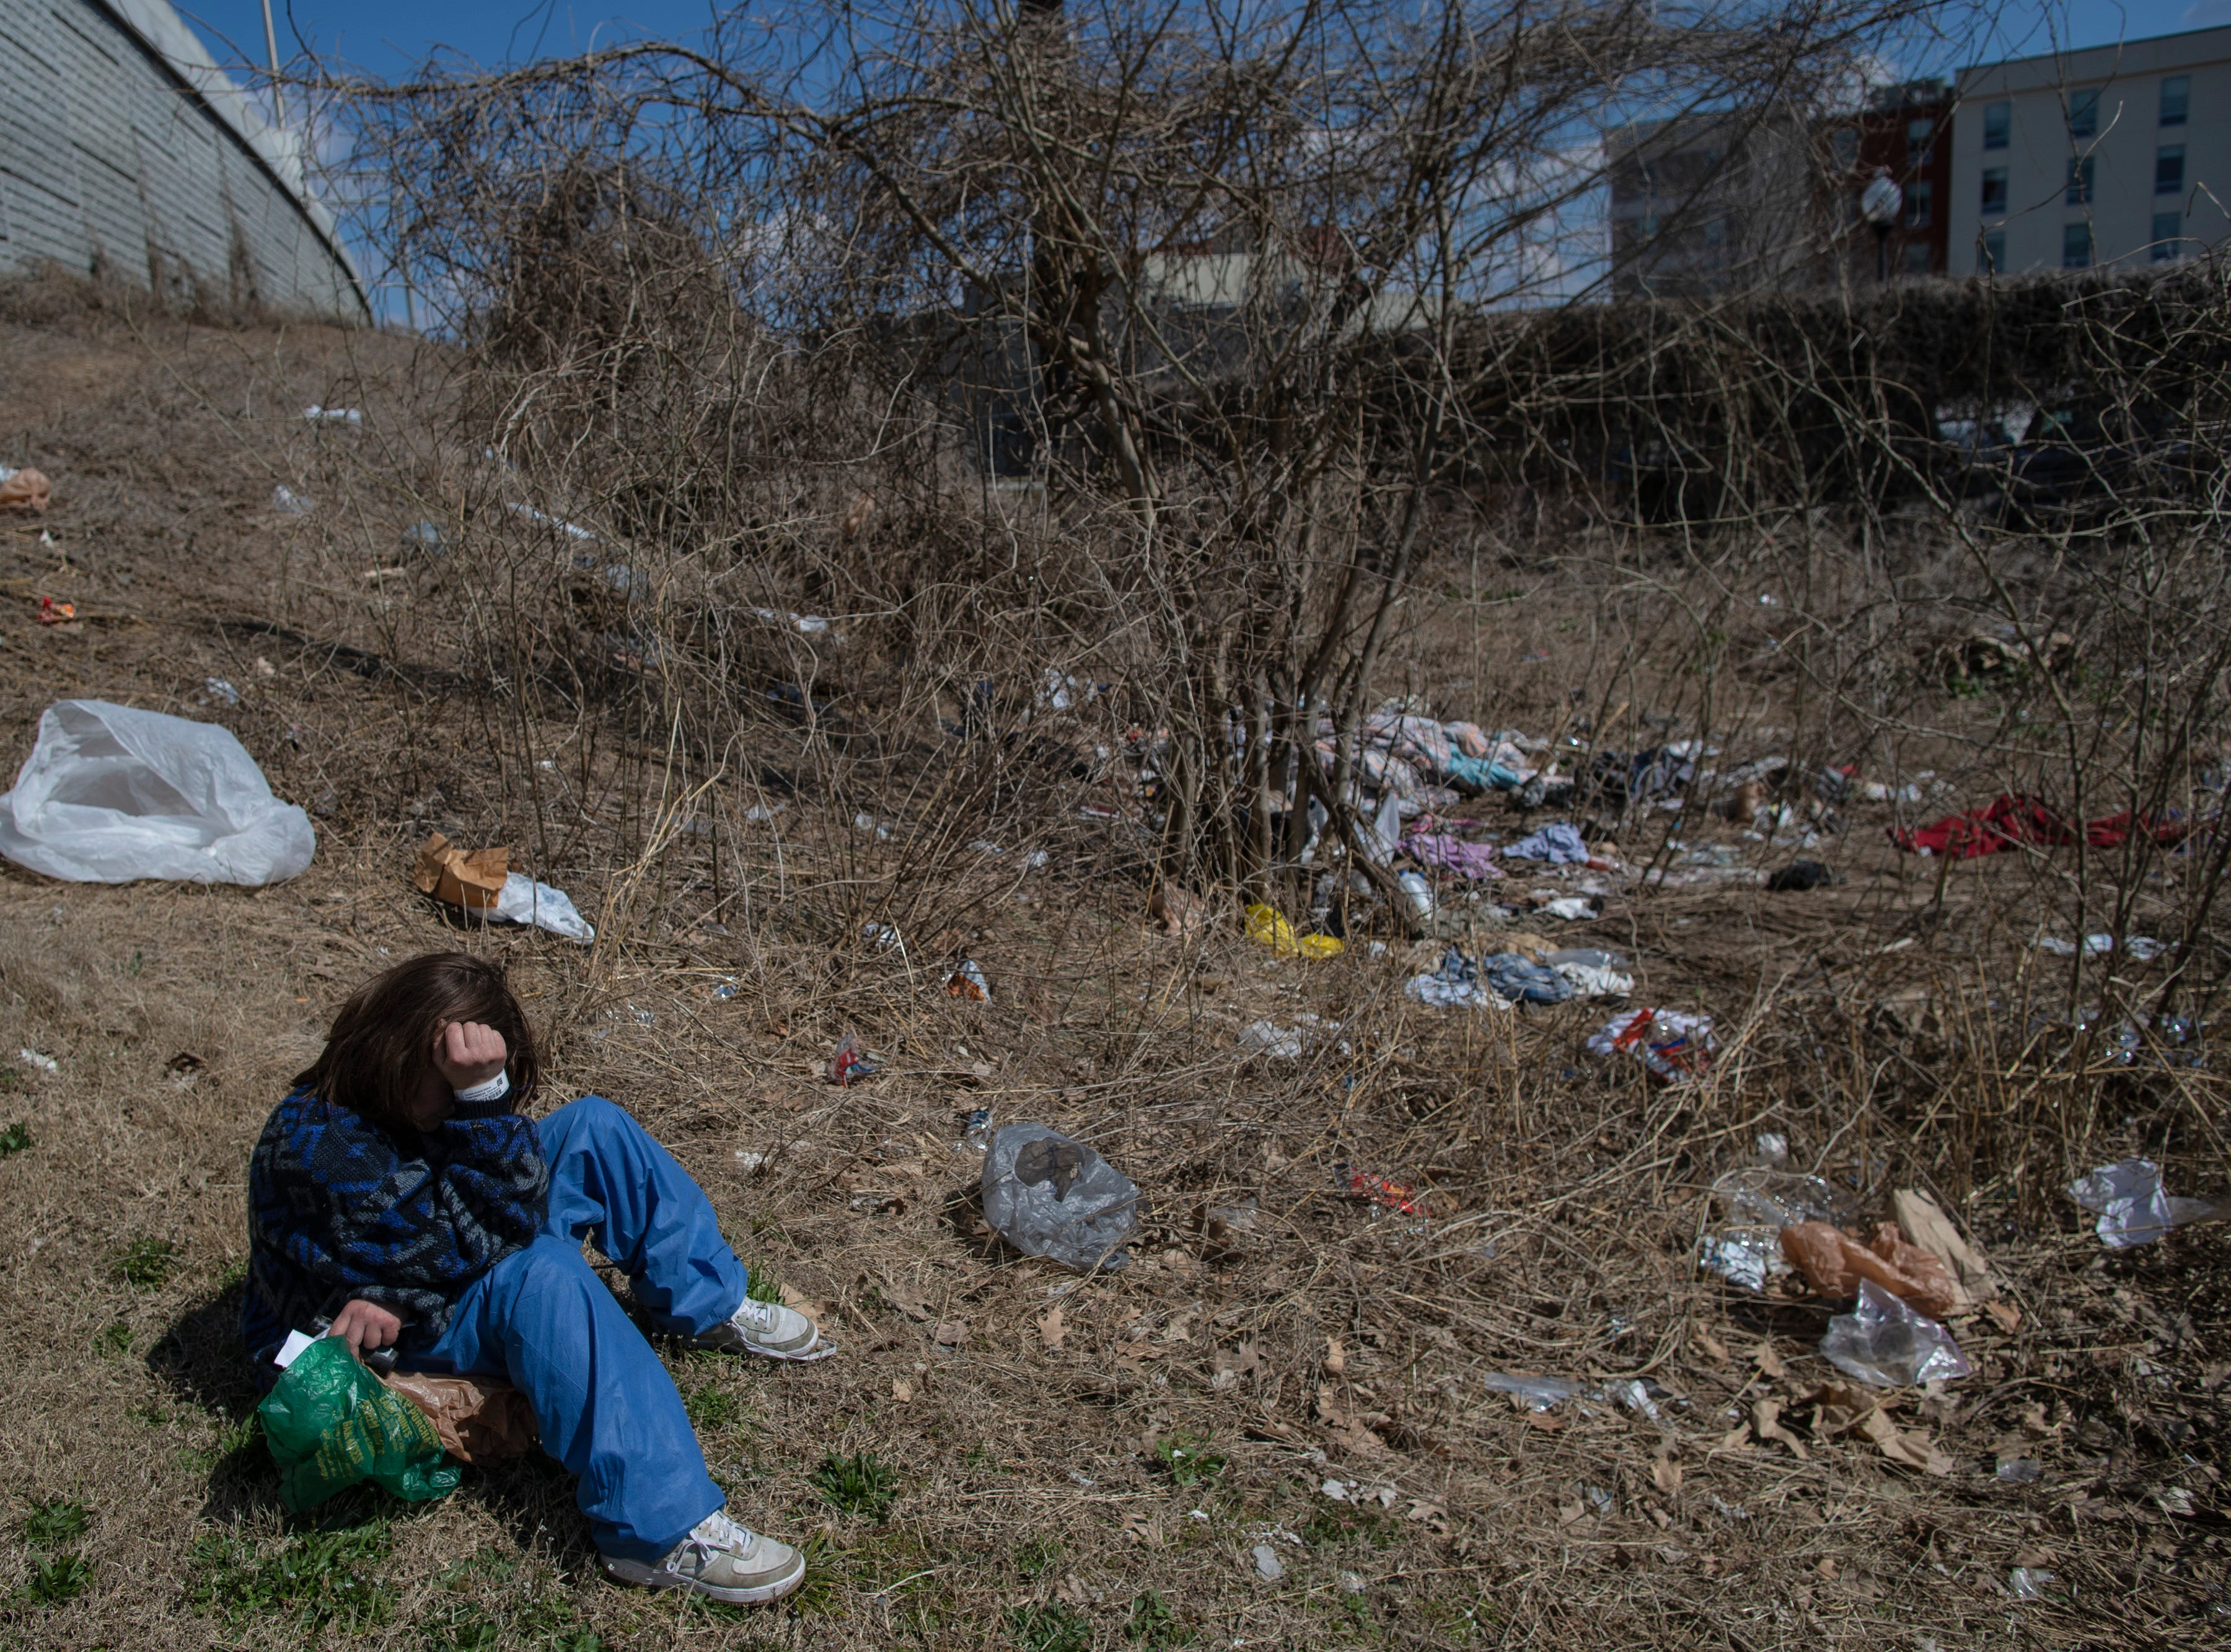 """Felecia, who declined to give her last name, takes a break from trying to relocate some of her belongings at the homeless camp area under the bypasses along East Jefferson Street and Jackson Street in downtown Louisville. """"I've been homeless two years and it's the meth,"""" Felecia said. """"At this point, I'm just allowing it to hold me under water."""" March 18, 2019"""